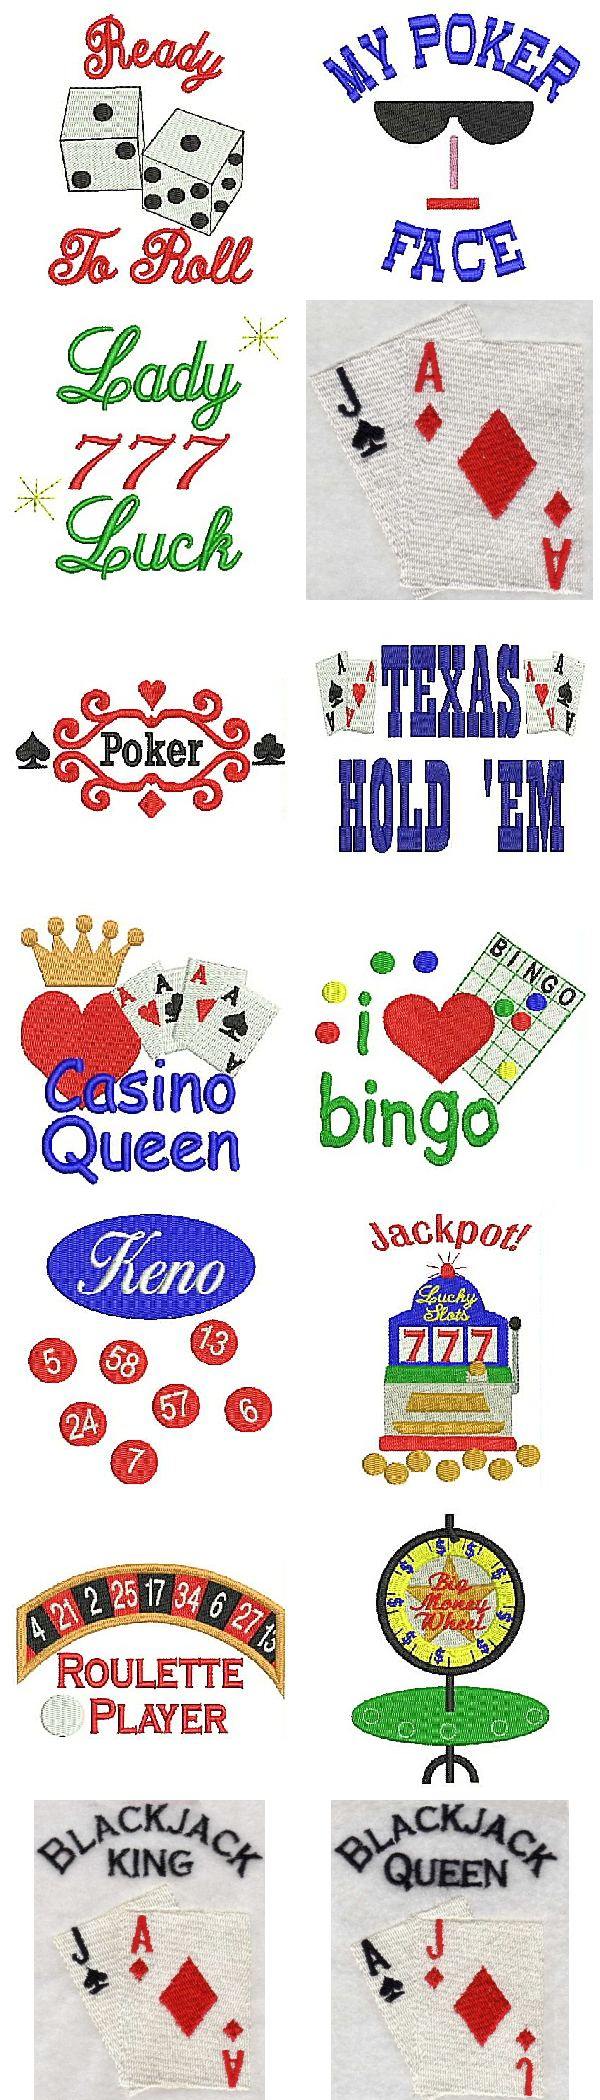 Casino Time Embroidery Machine Design Details